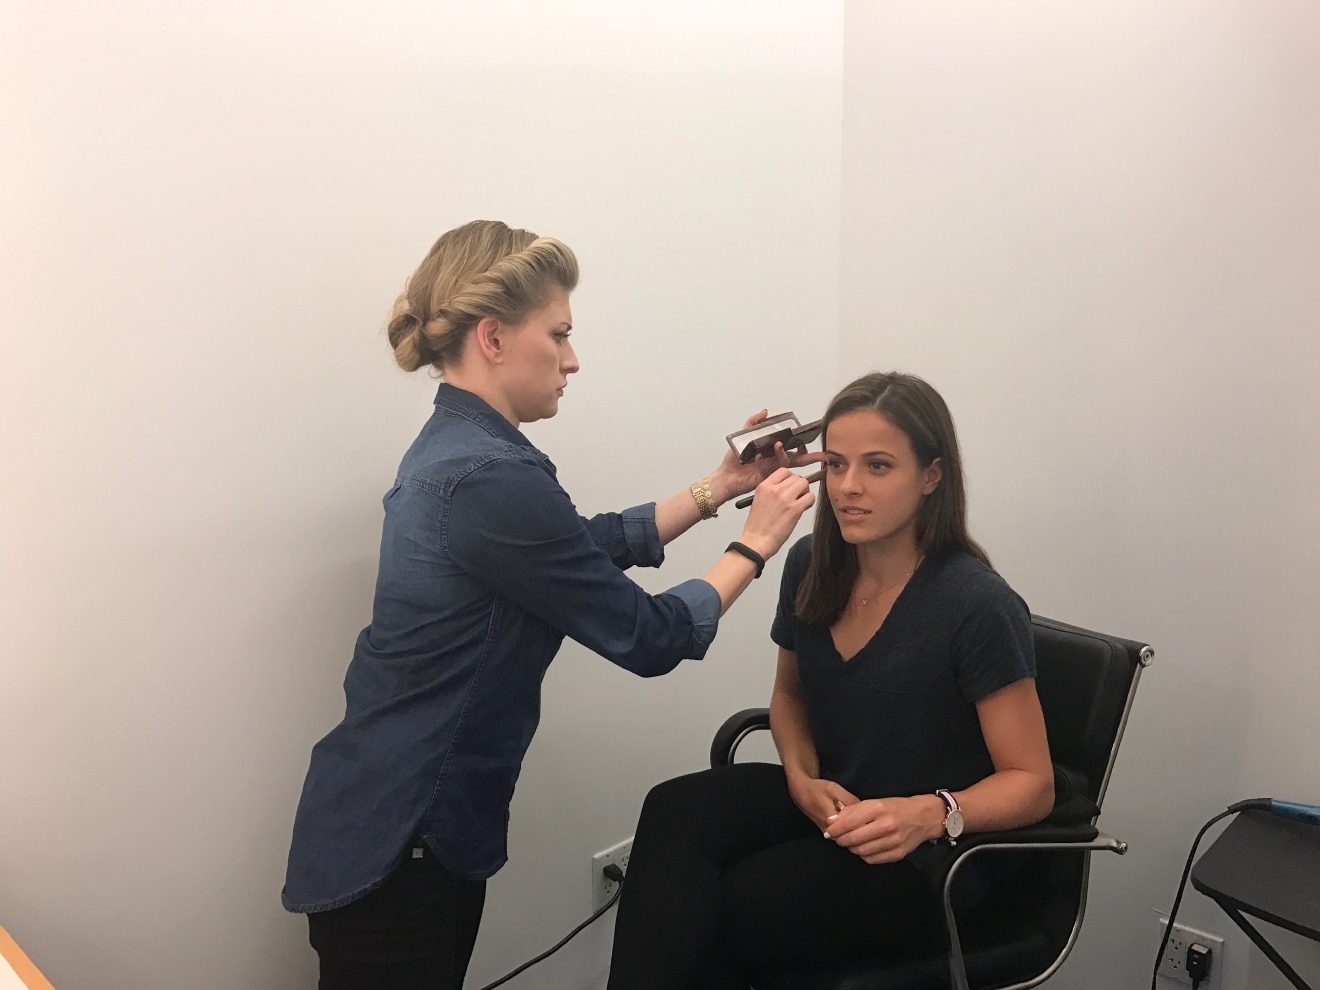 Nicole Gibbs sits in hair and makeup before going on Tennis Channel Live to discuss My Tennis Life.